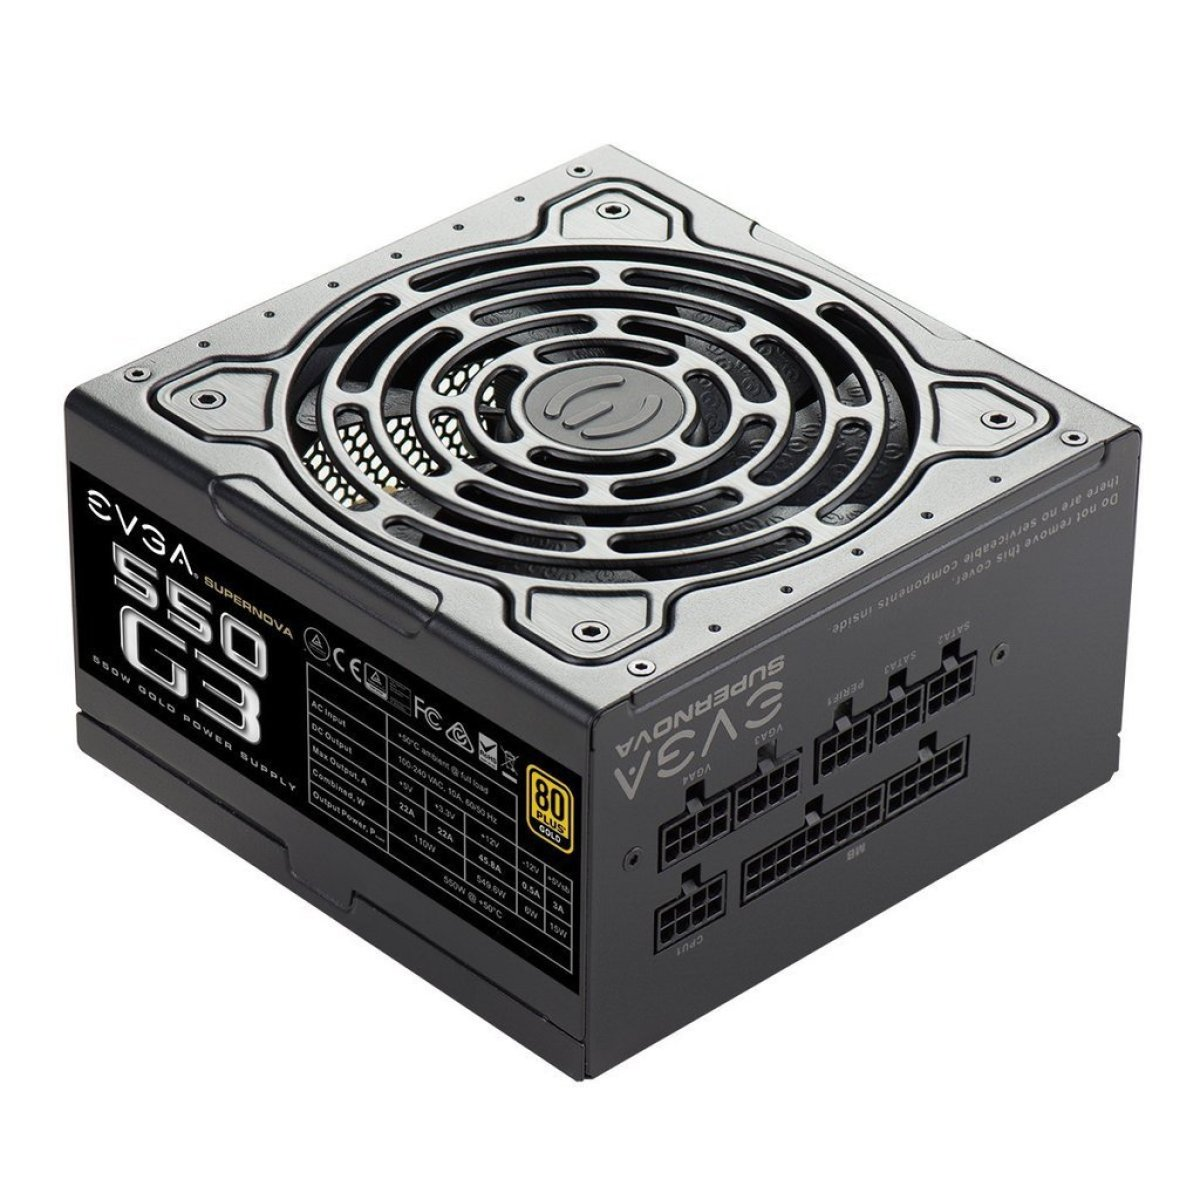 220-G3-0550-Y1 review